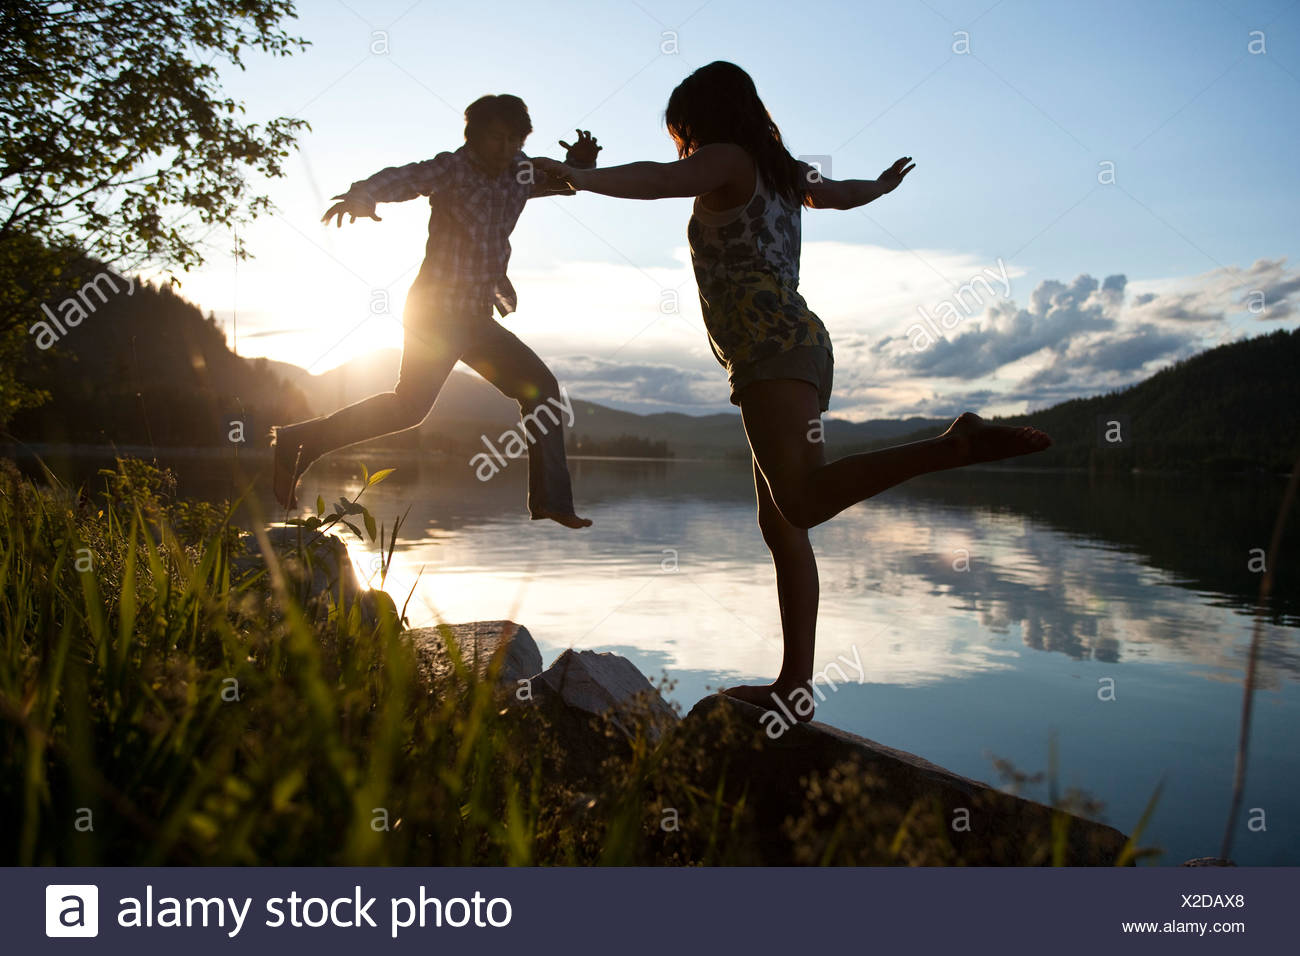 Two young adults balancing on rocks at sunset next to the lake. - Stock Image